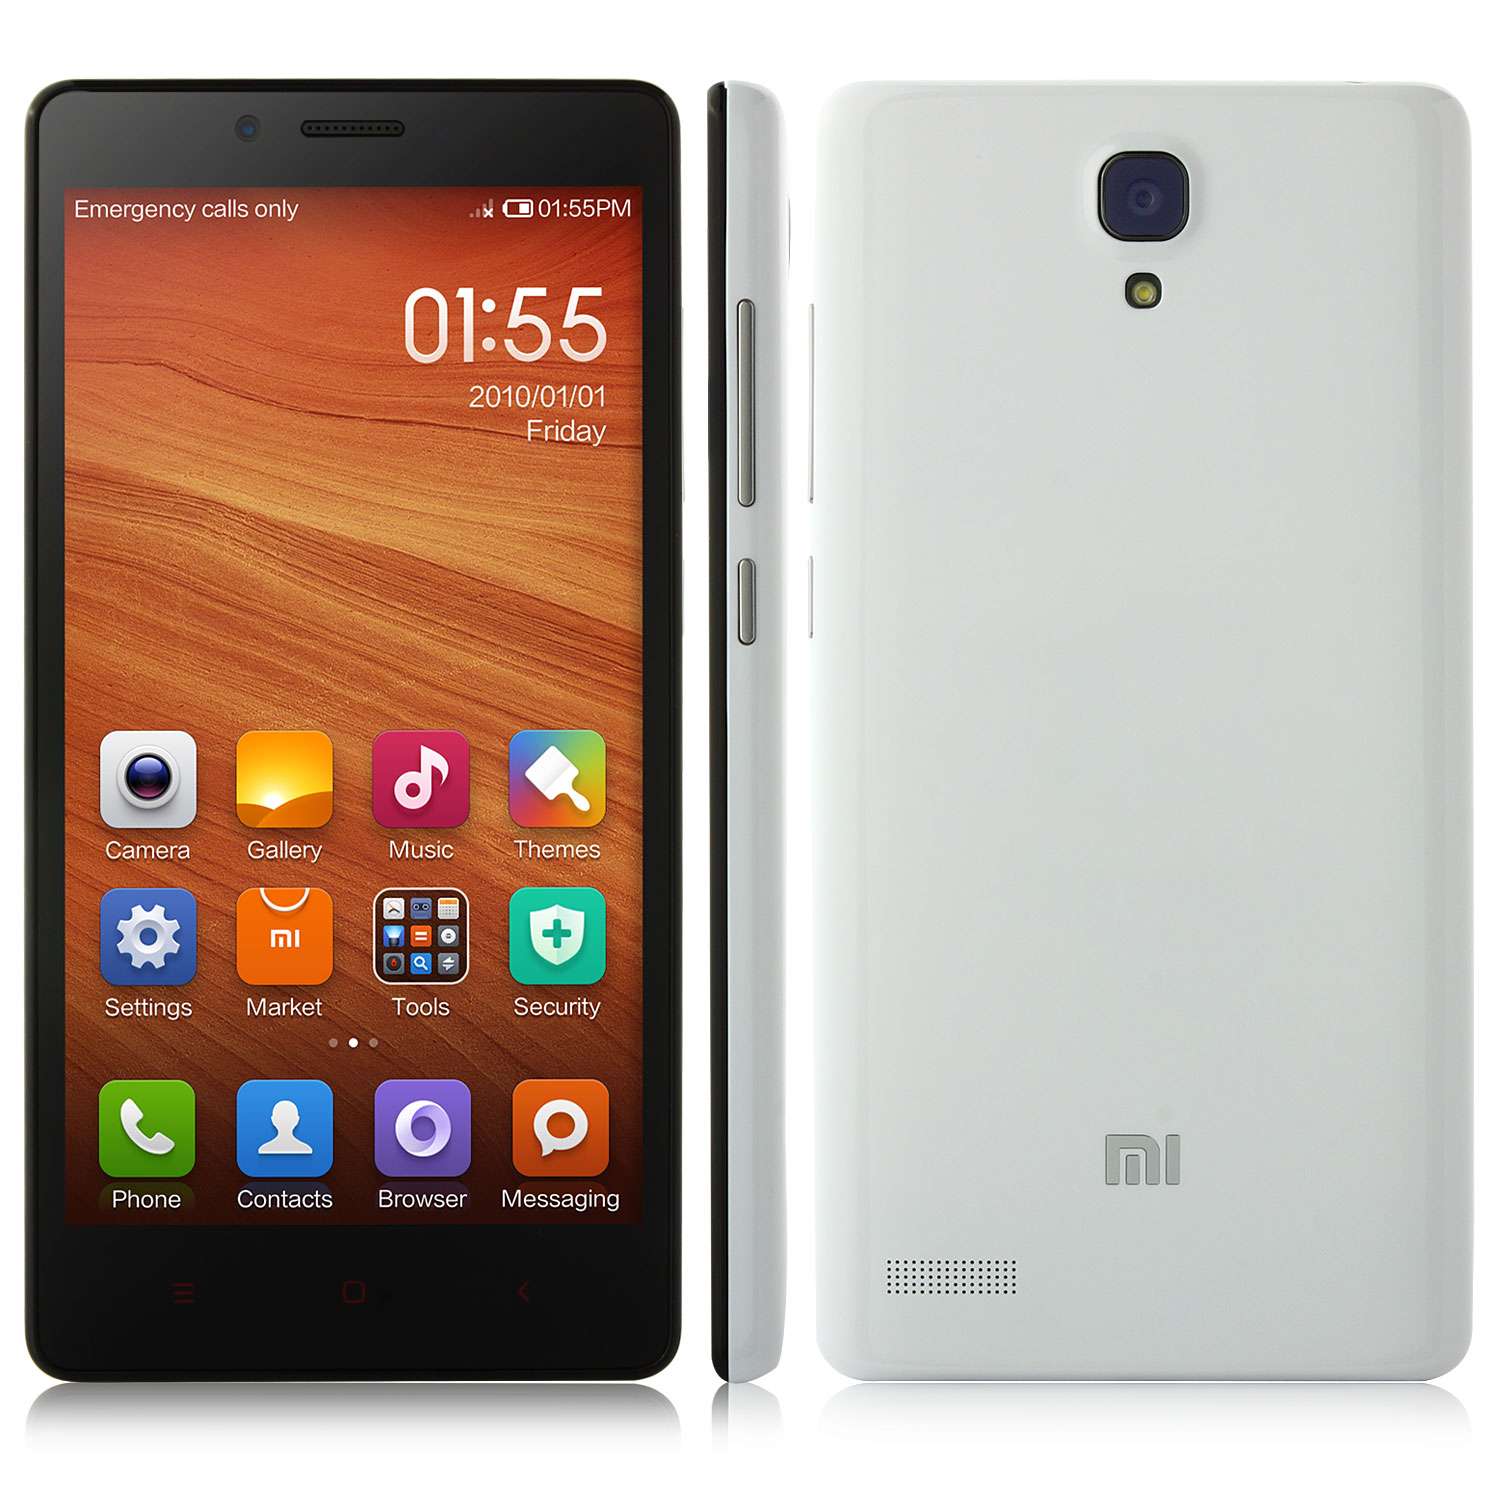 XIAOMI Redmi Note 4G LTE 64bit Snapdragon 410 5.5 Inch HD IPS 13.0MP 3100mAh